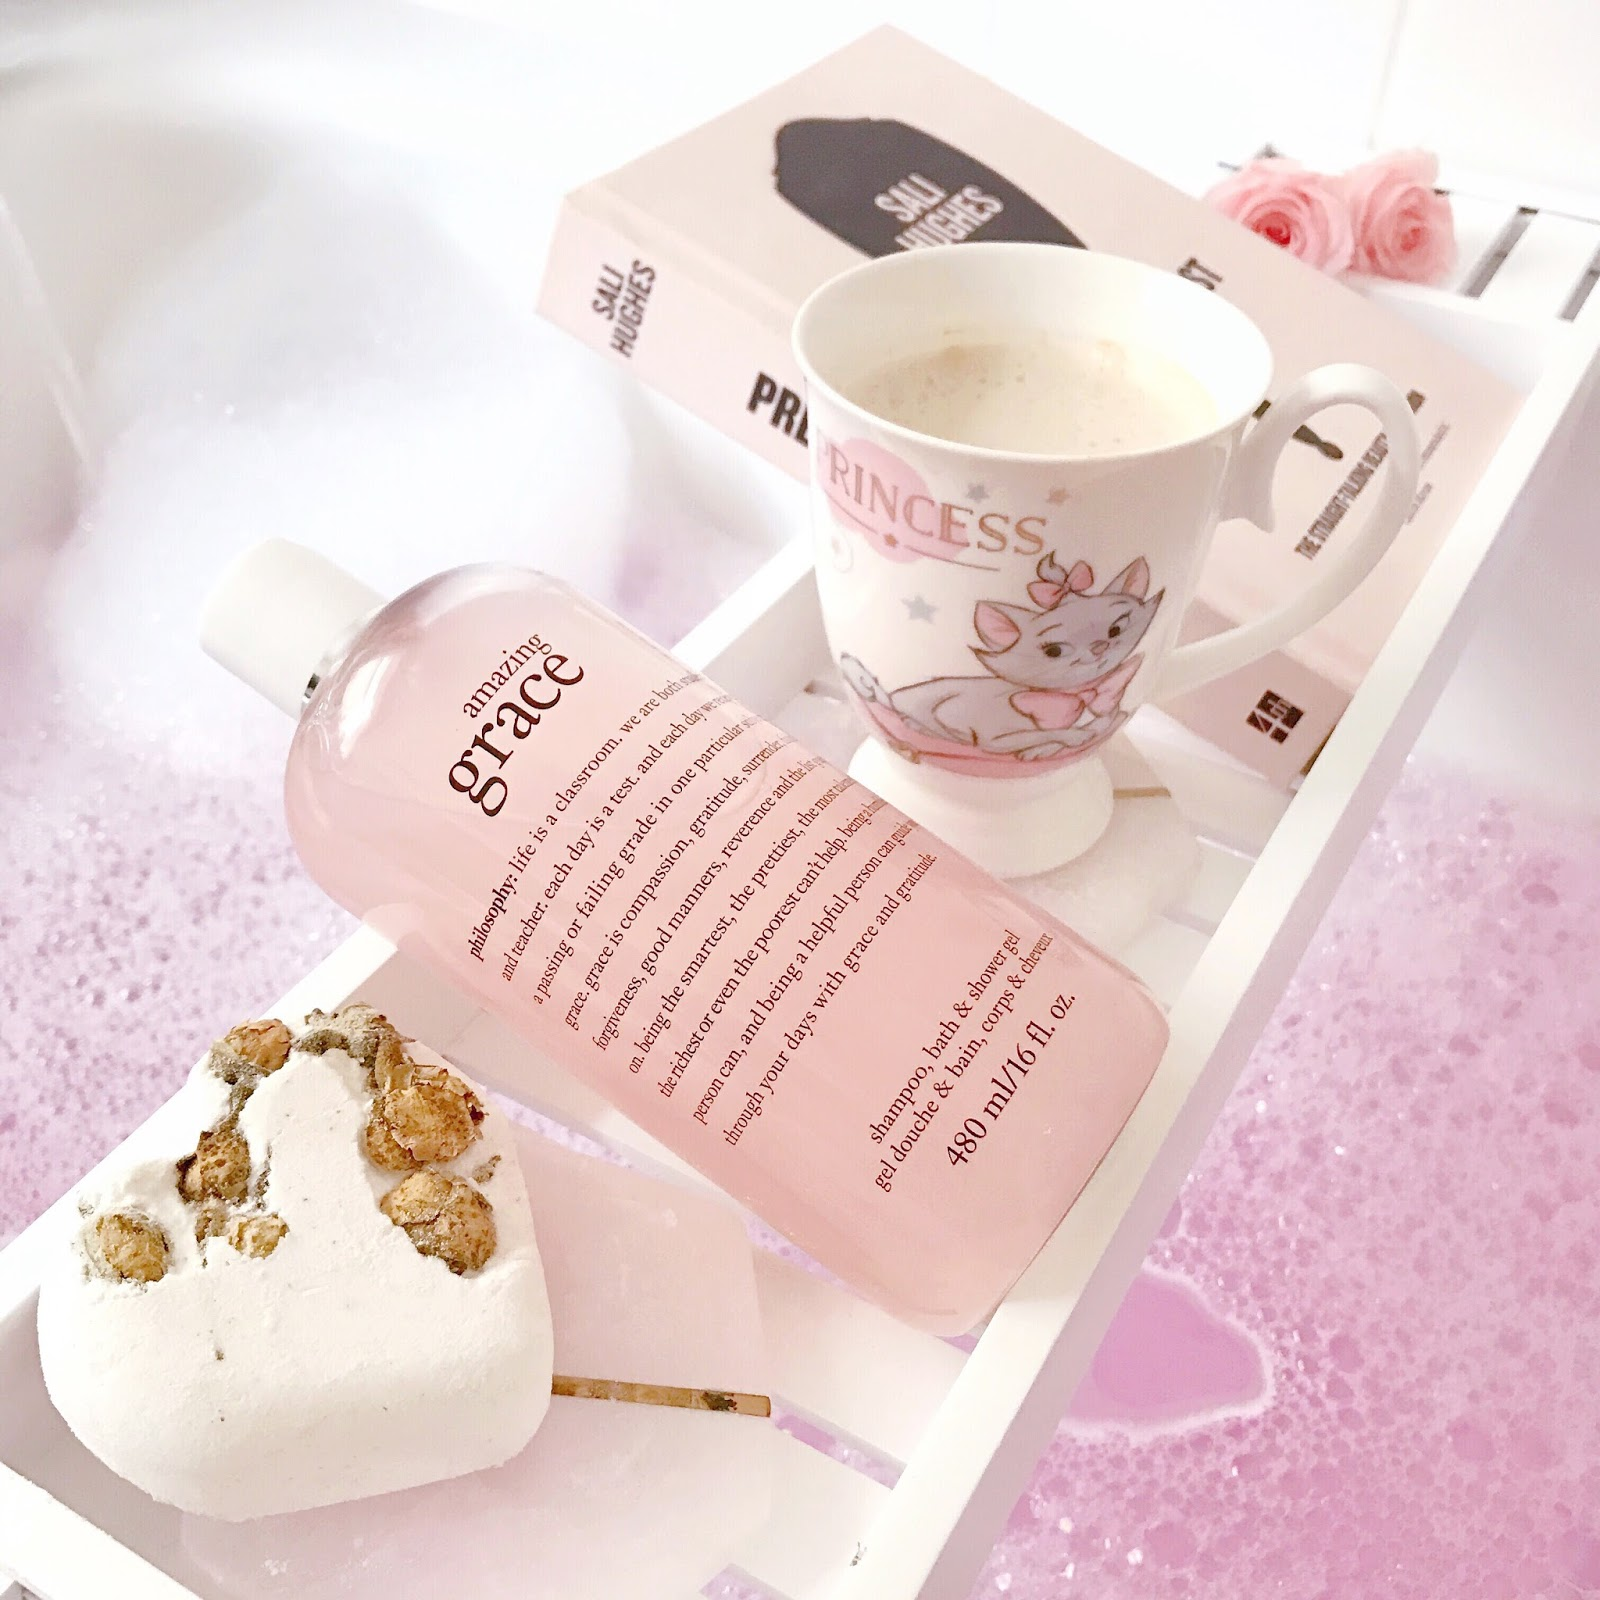 September Photo Diary | A Pink Lush Bubble Bath